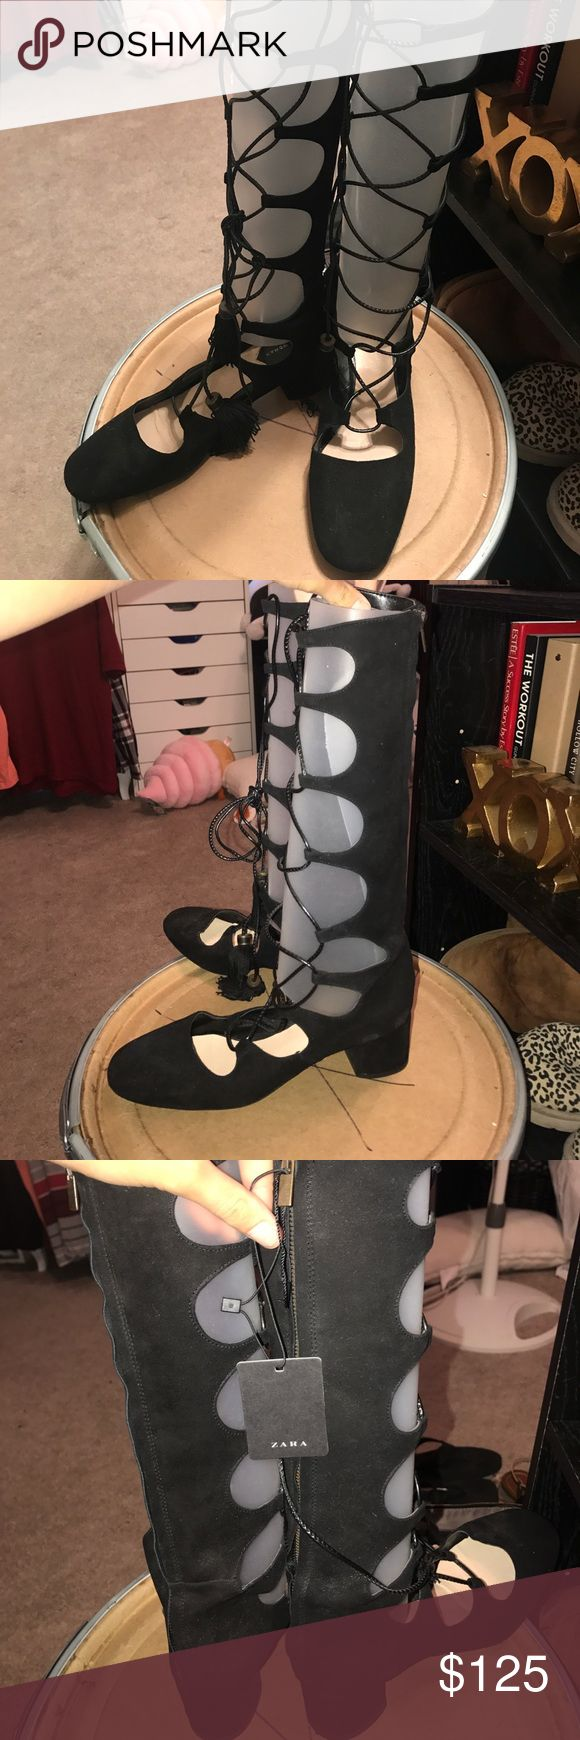 Rare Zara Lace Up Shoes Brand new never worn. Retails for about $150. Not sold in stores anymore, very rare. Zara size 11 US 41 UK. FITS LIKE A US 10* Zara Shoes Lace Up Boots